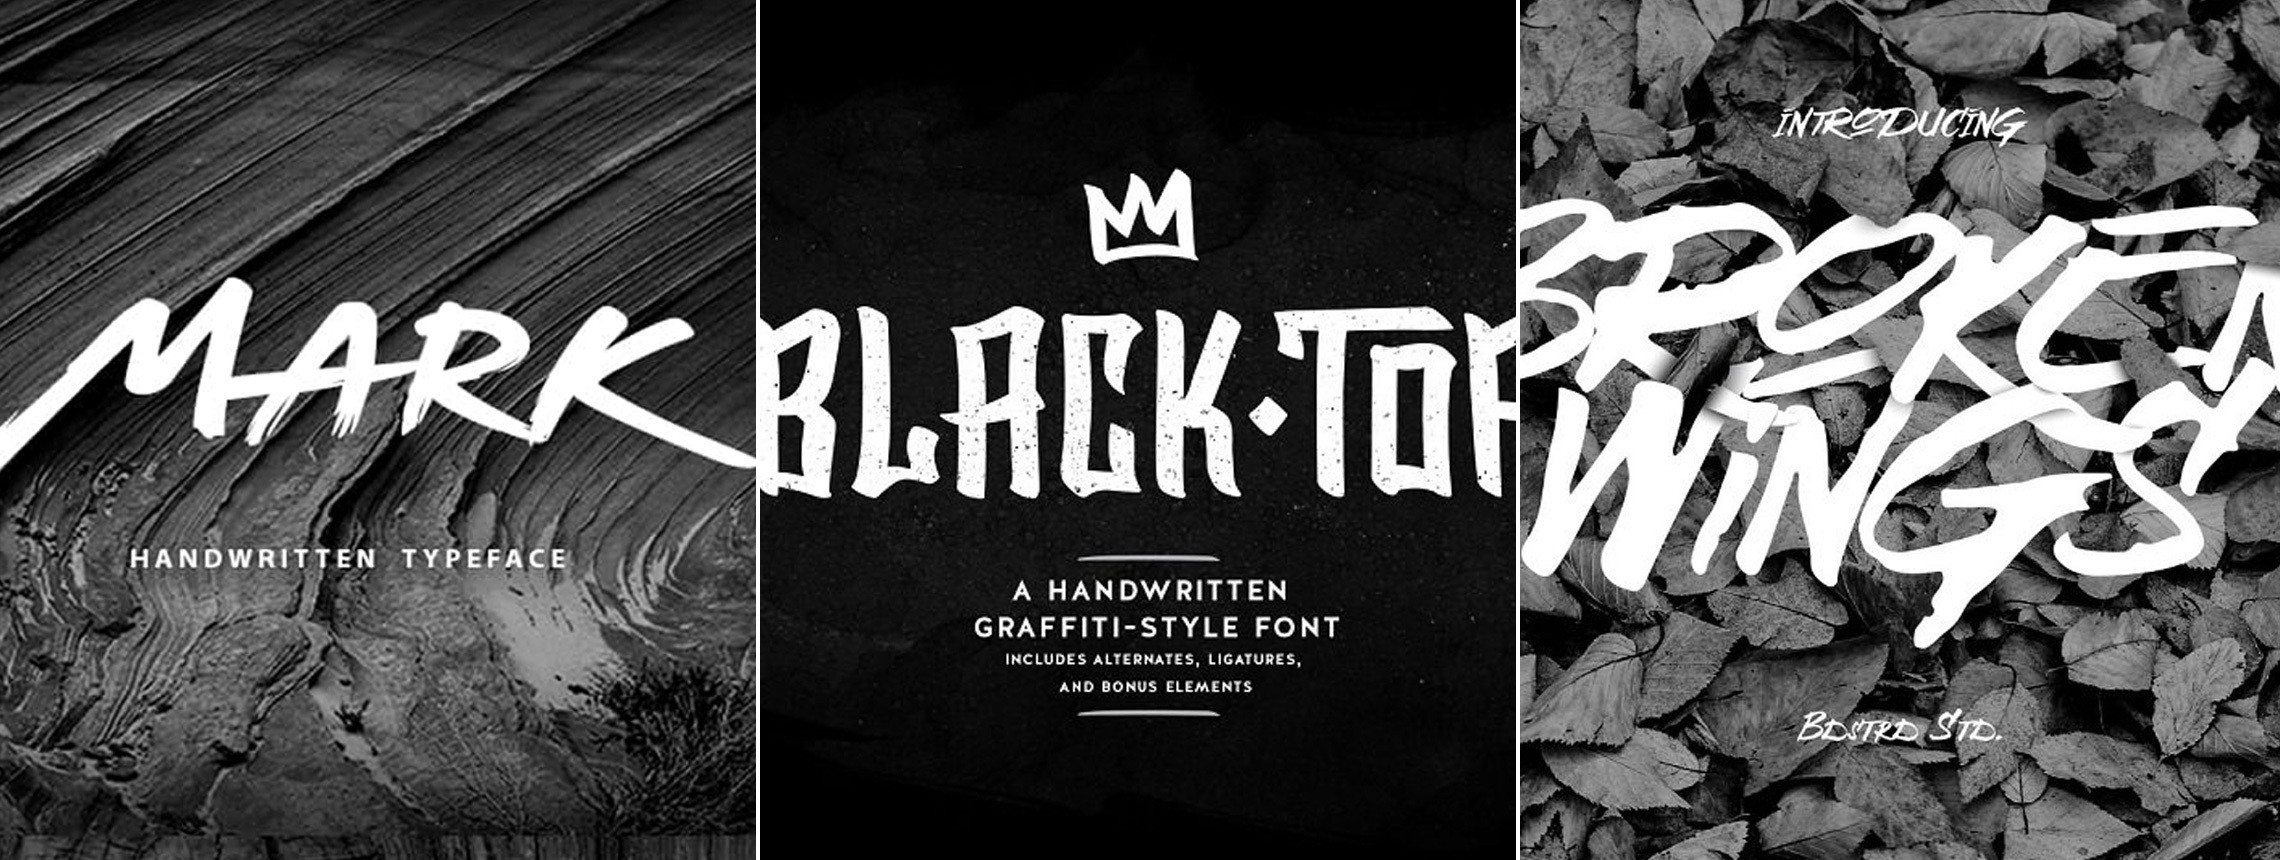 21 Graffiti Fonts for True Street Cred